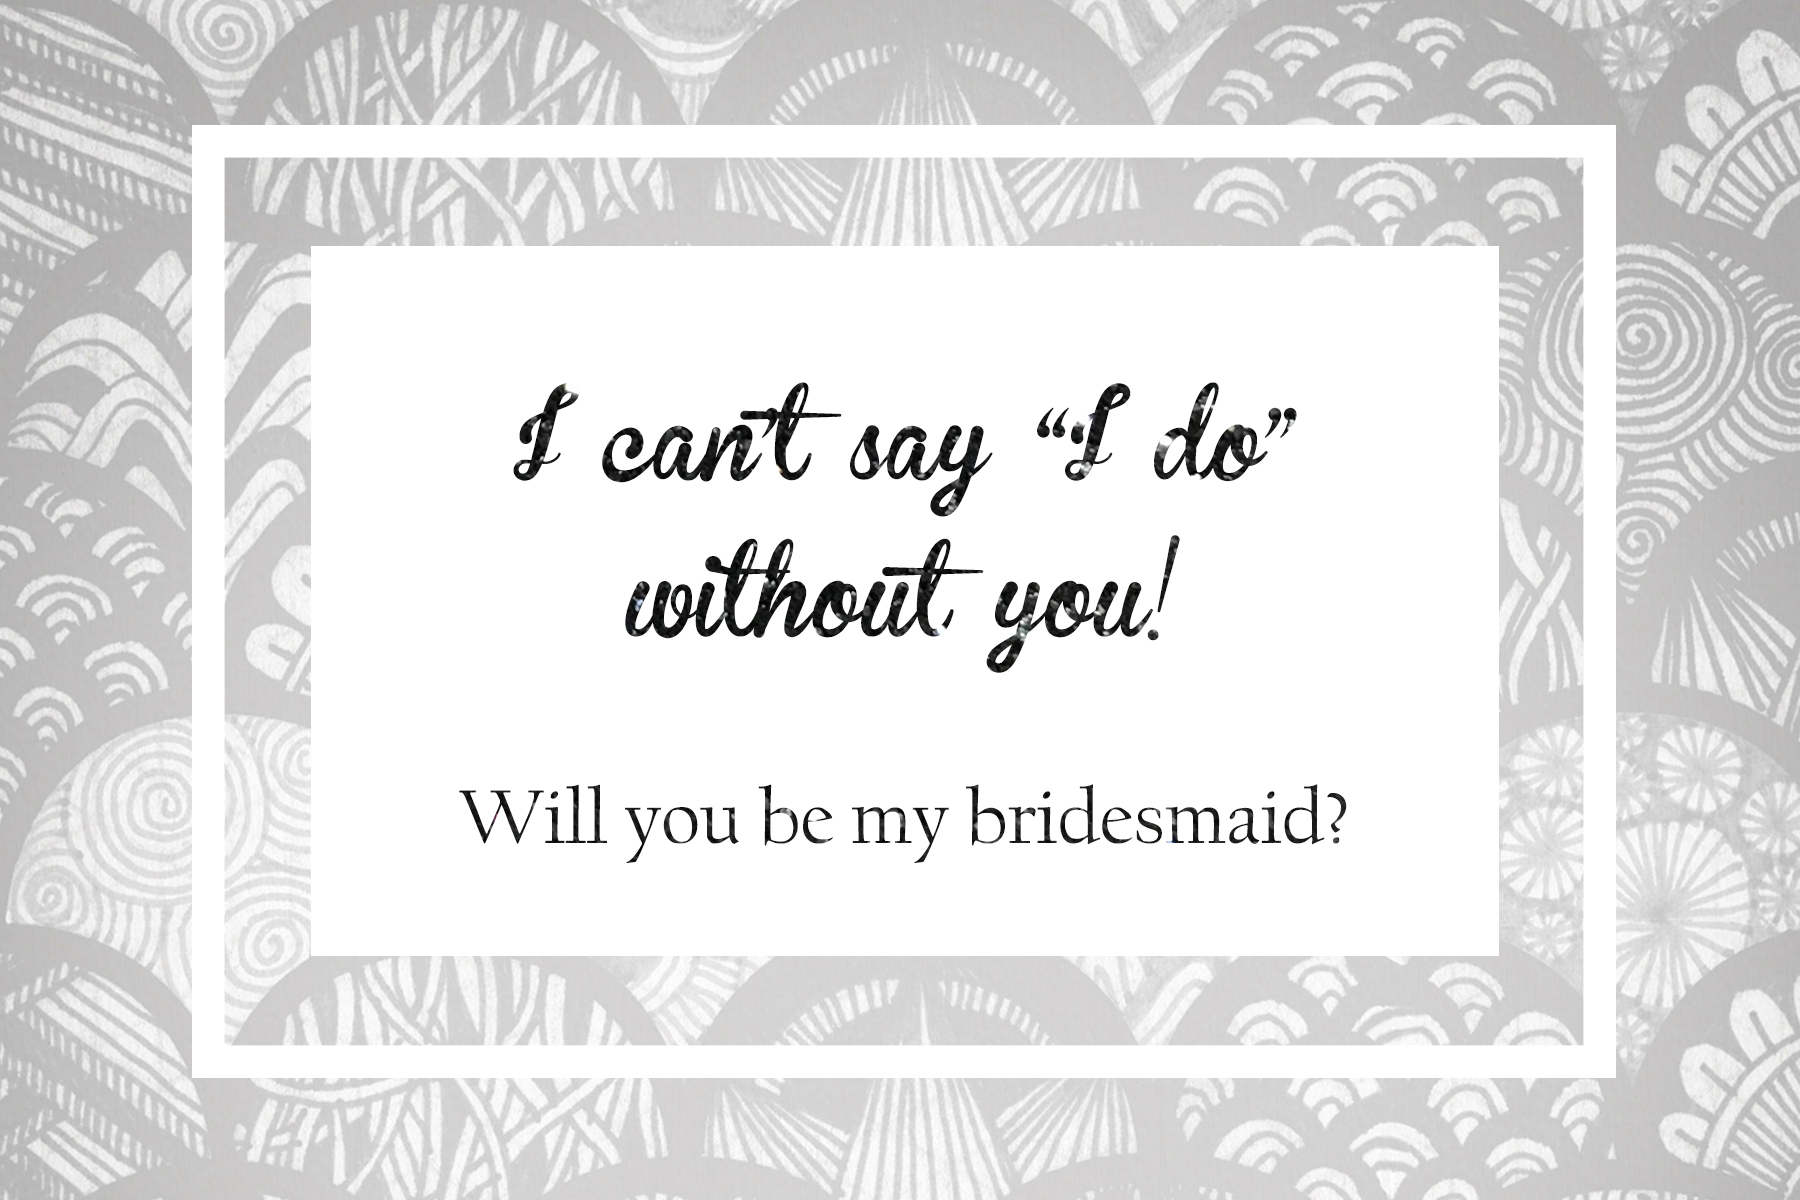 I Cant Say I Do Without You Free Printable (87+ Images In Collection - I Can T Say I Do Without You Free Printable